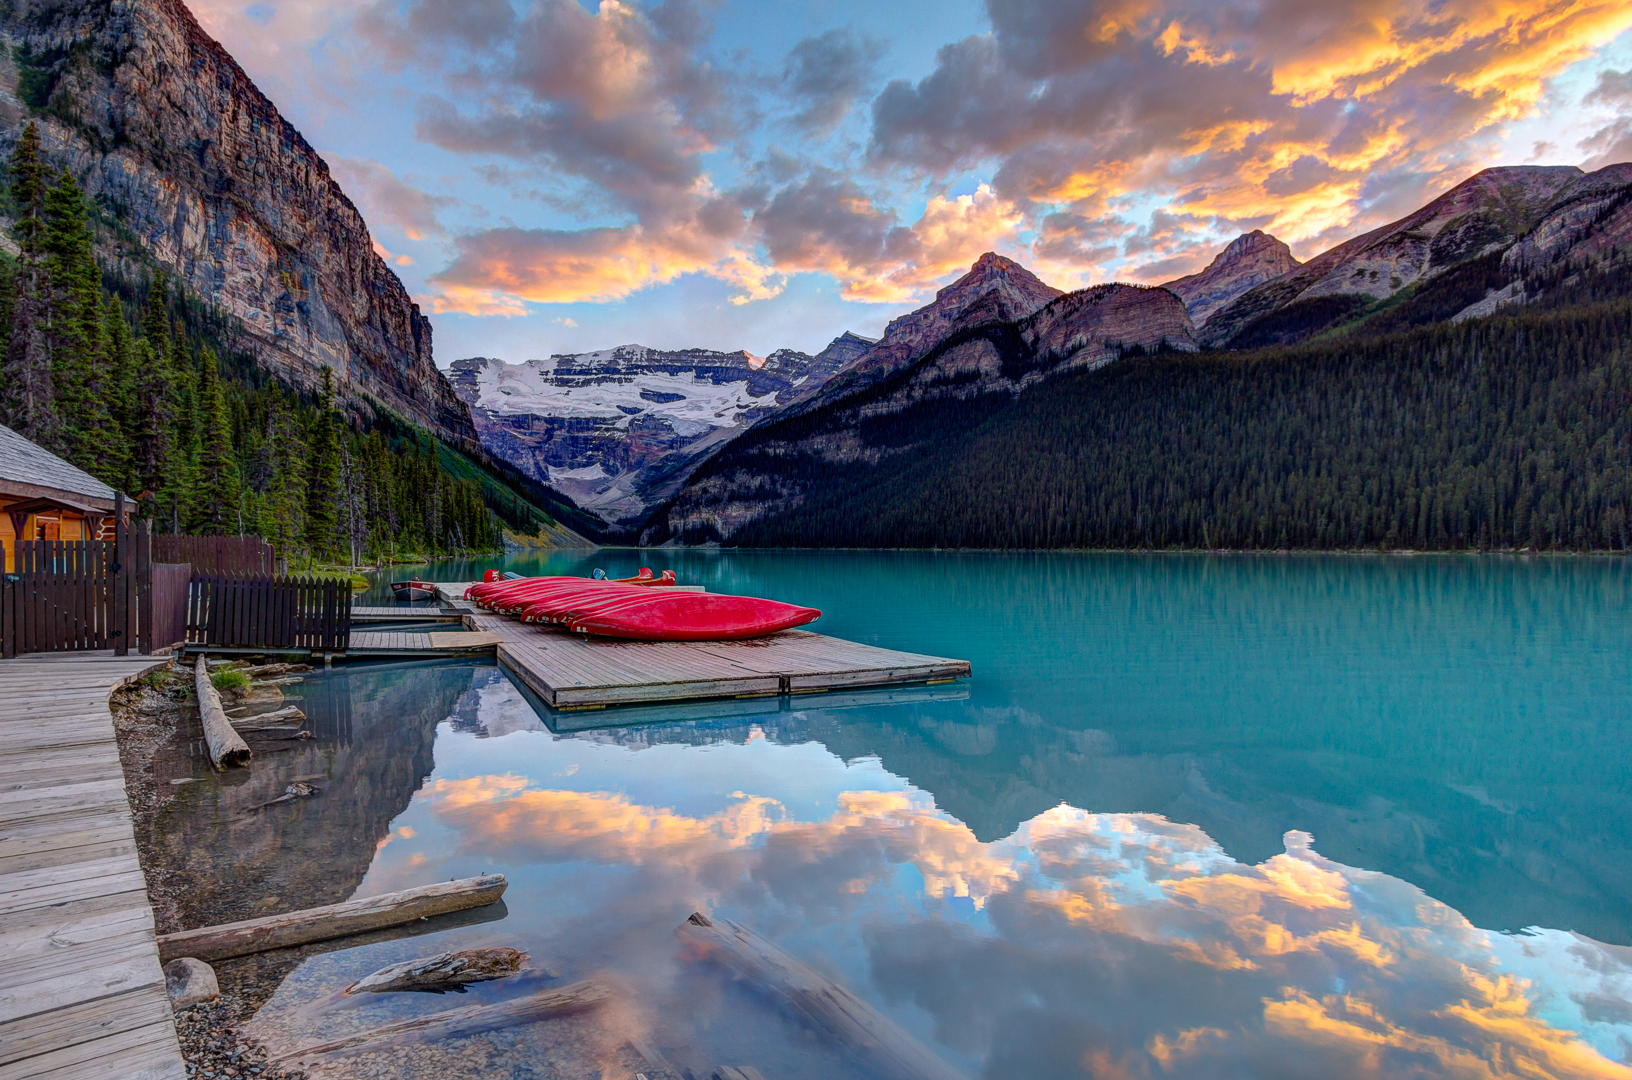 Canoes at Lake Louise, Canada